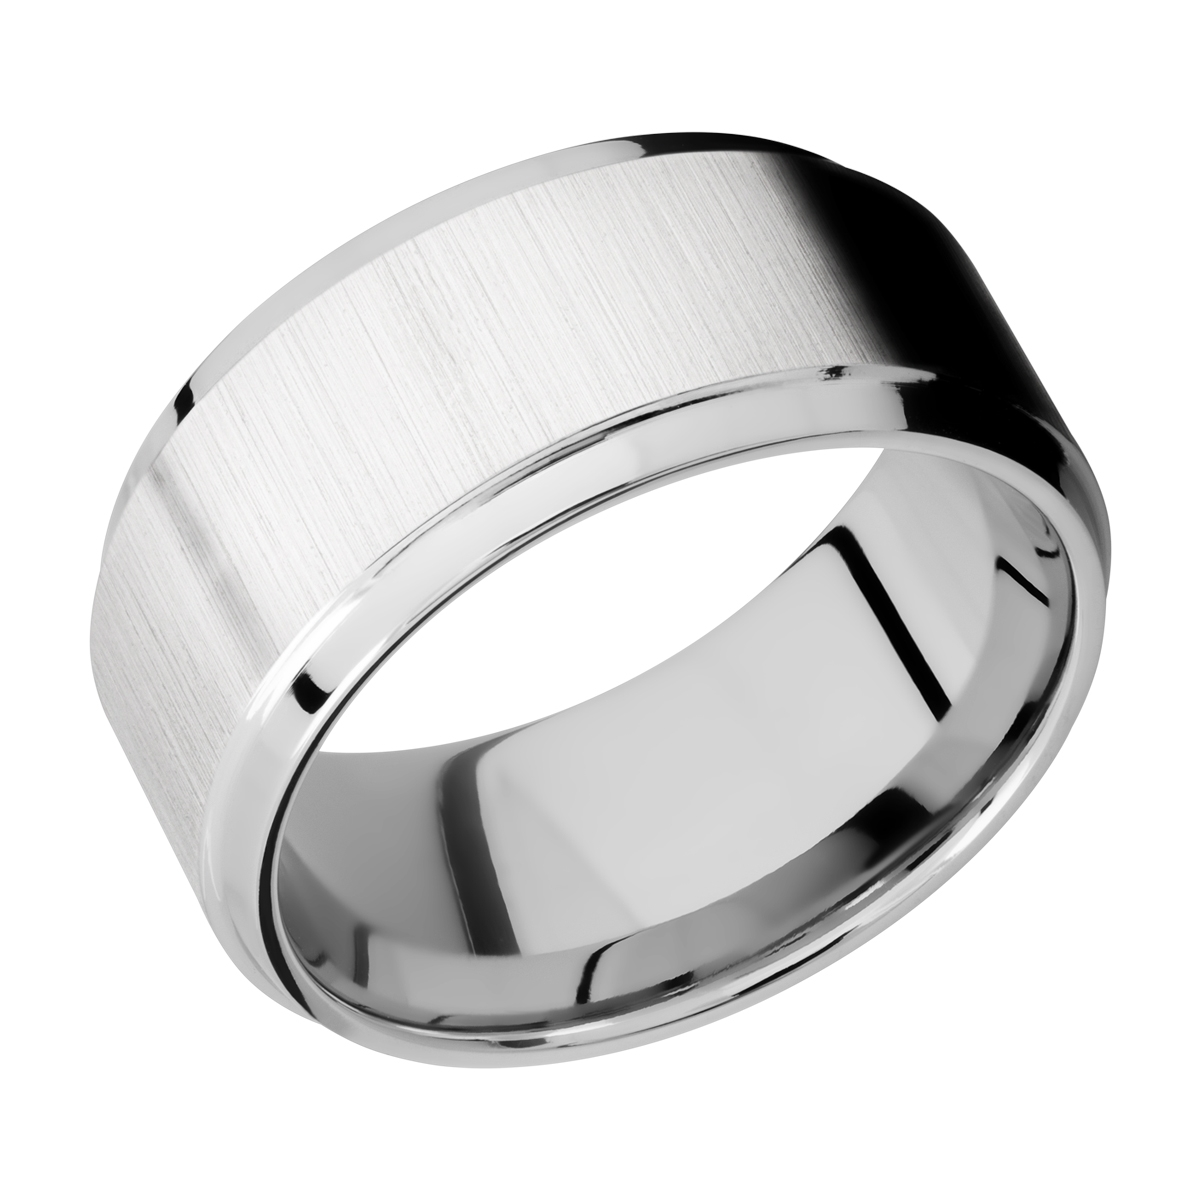 Lashbrook CC10B(S) Cobalt Chrome Wedding Ring or Band